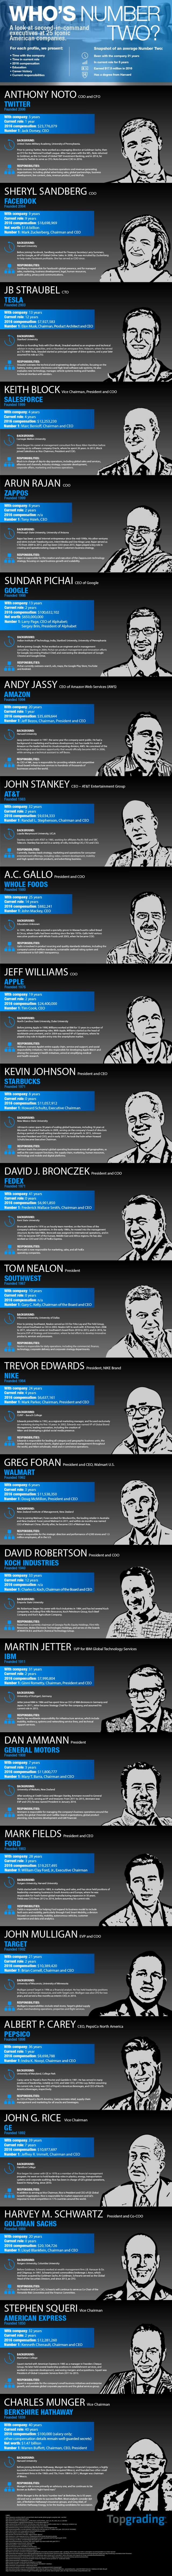 Who Is Second-In-Command at 25 Iconic American Companies?